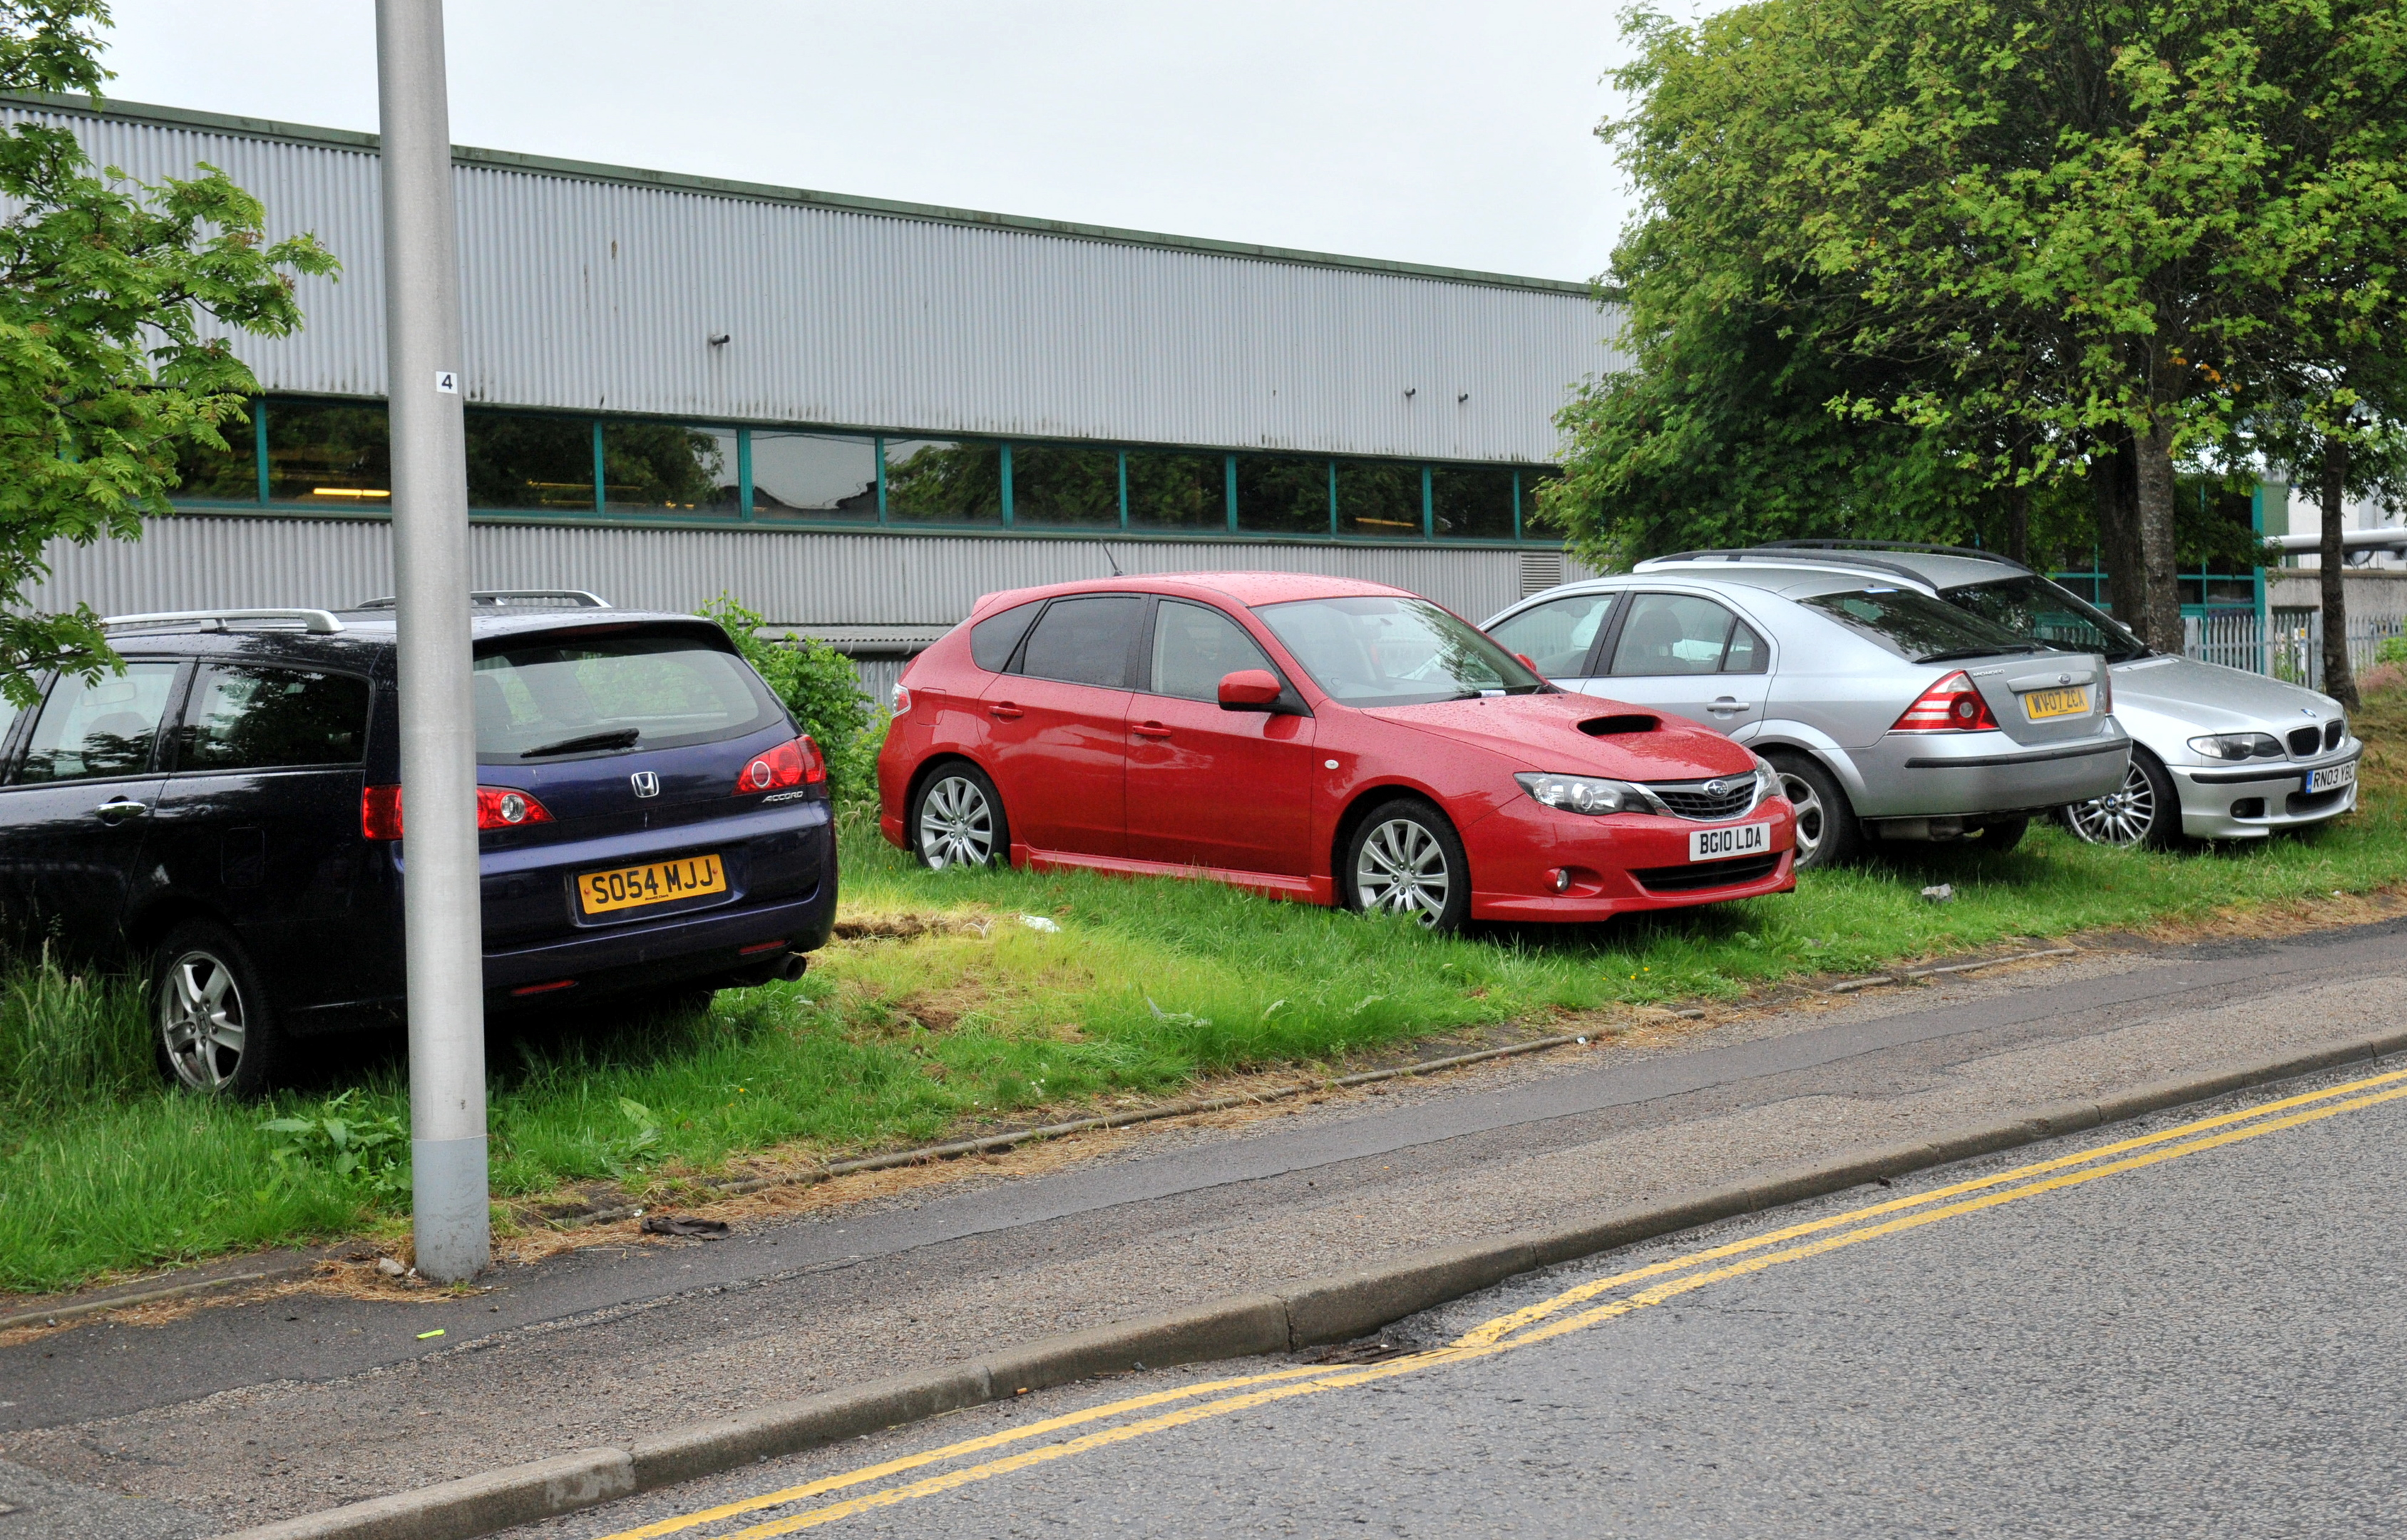 Some cars  –  not the ones pictured  –  are said to be left for up to a month on Kirkhill Drive's verges.